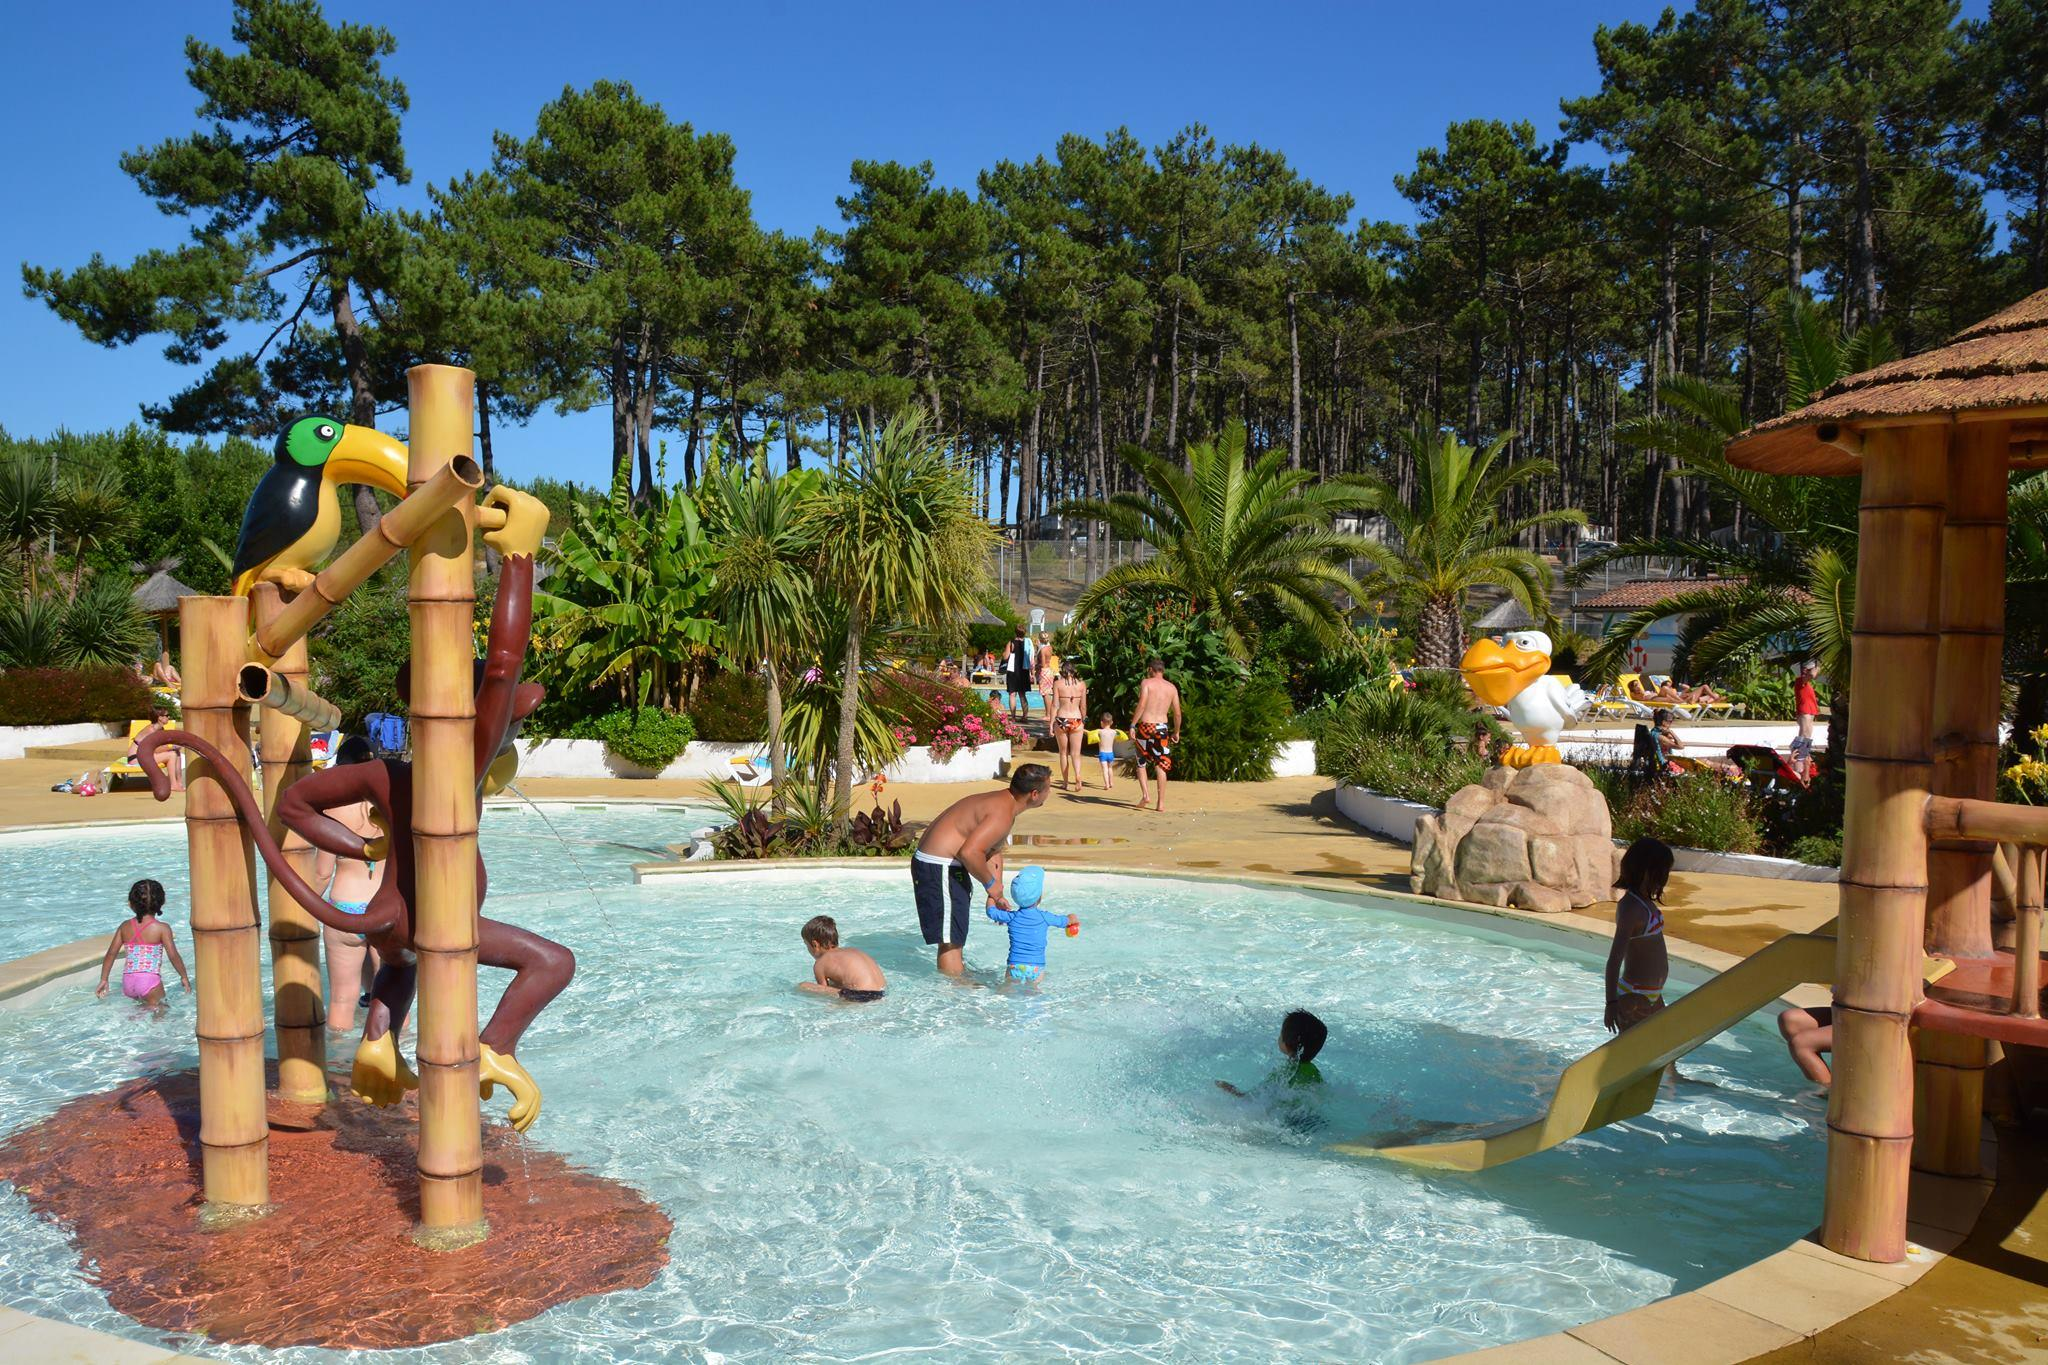 Zwemplezier Camping Eurosol - Saint Girons Plage